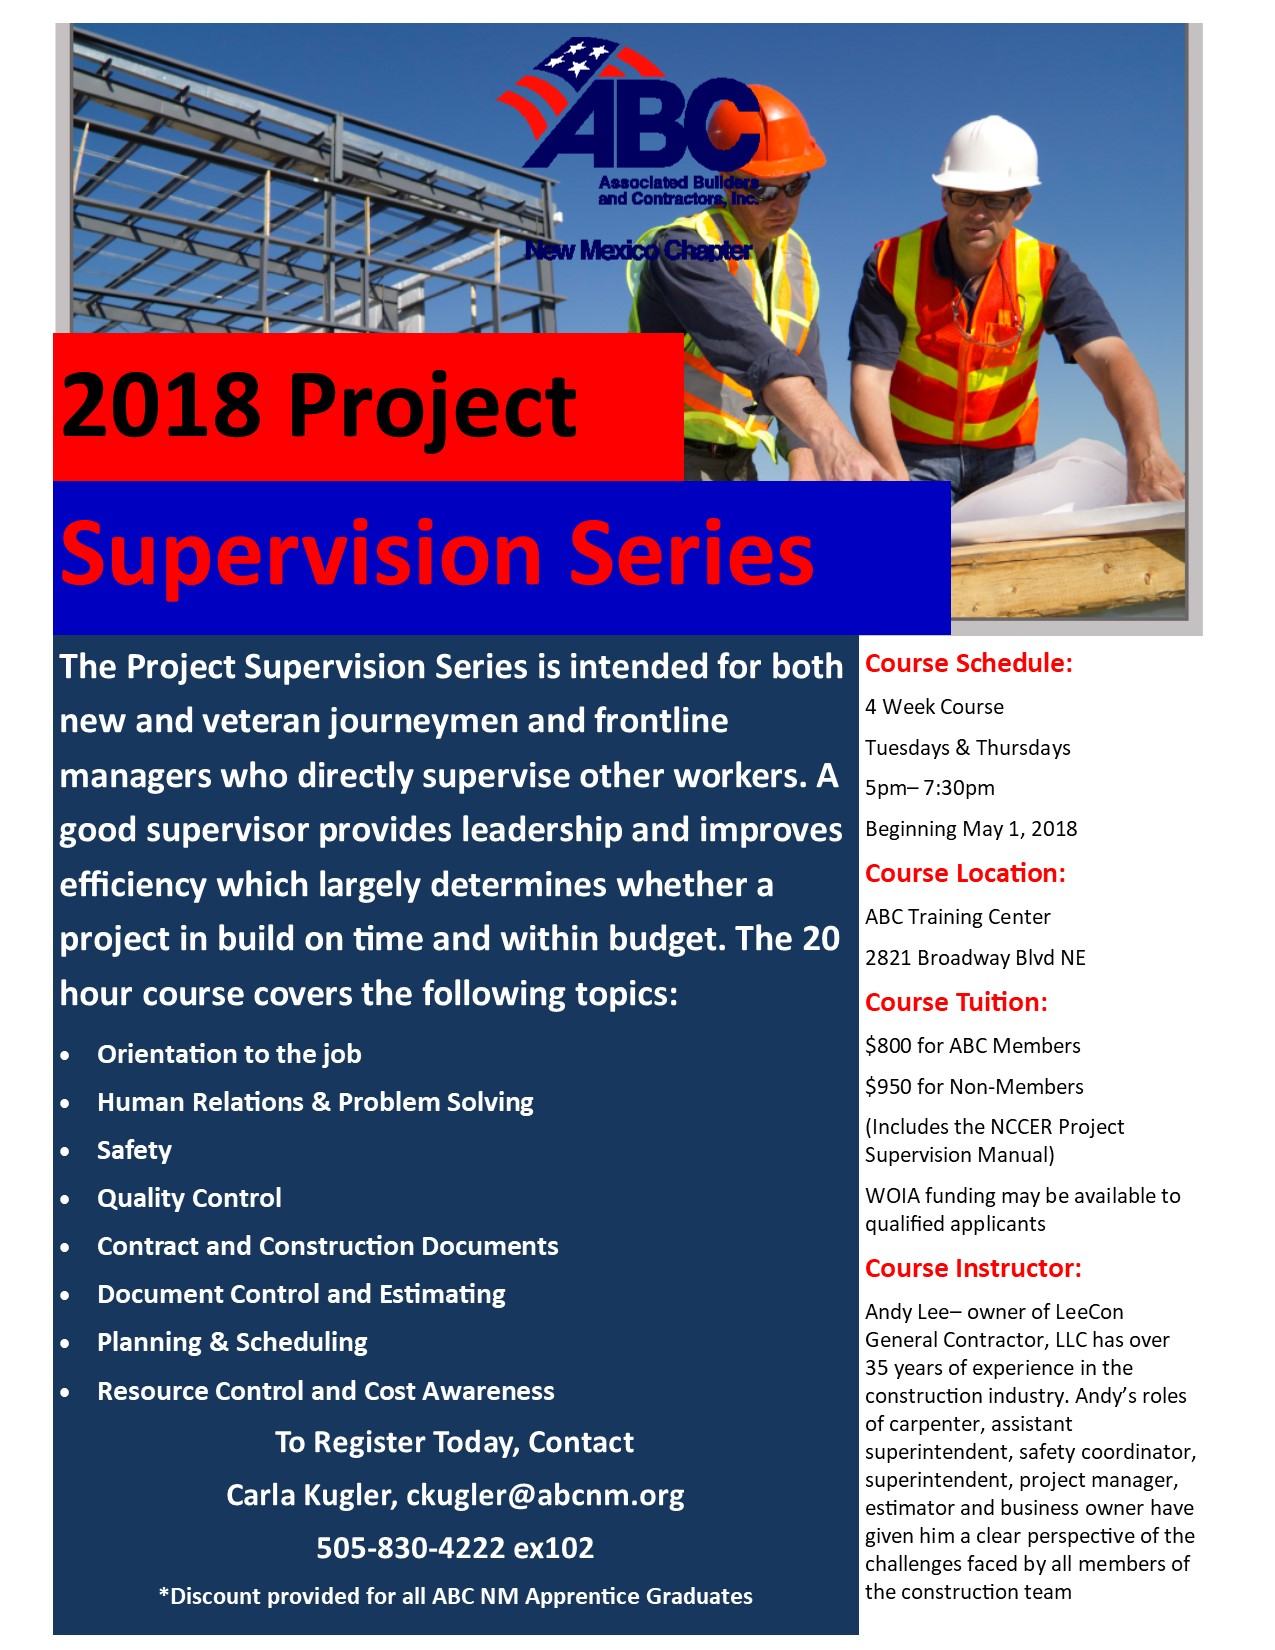 Project Supervision Series2018